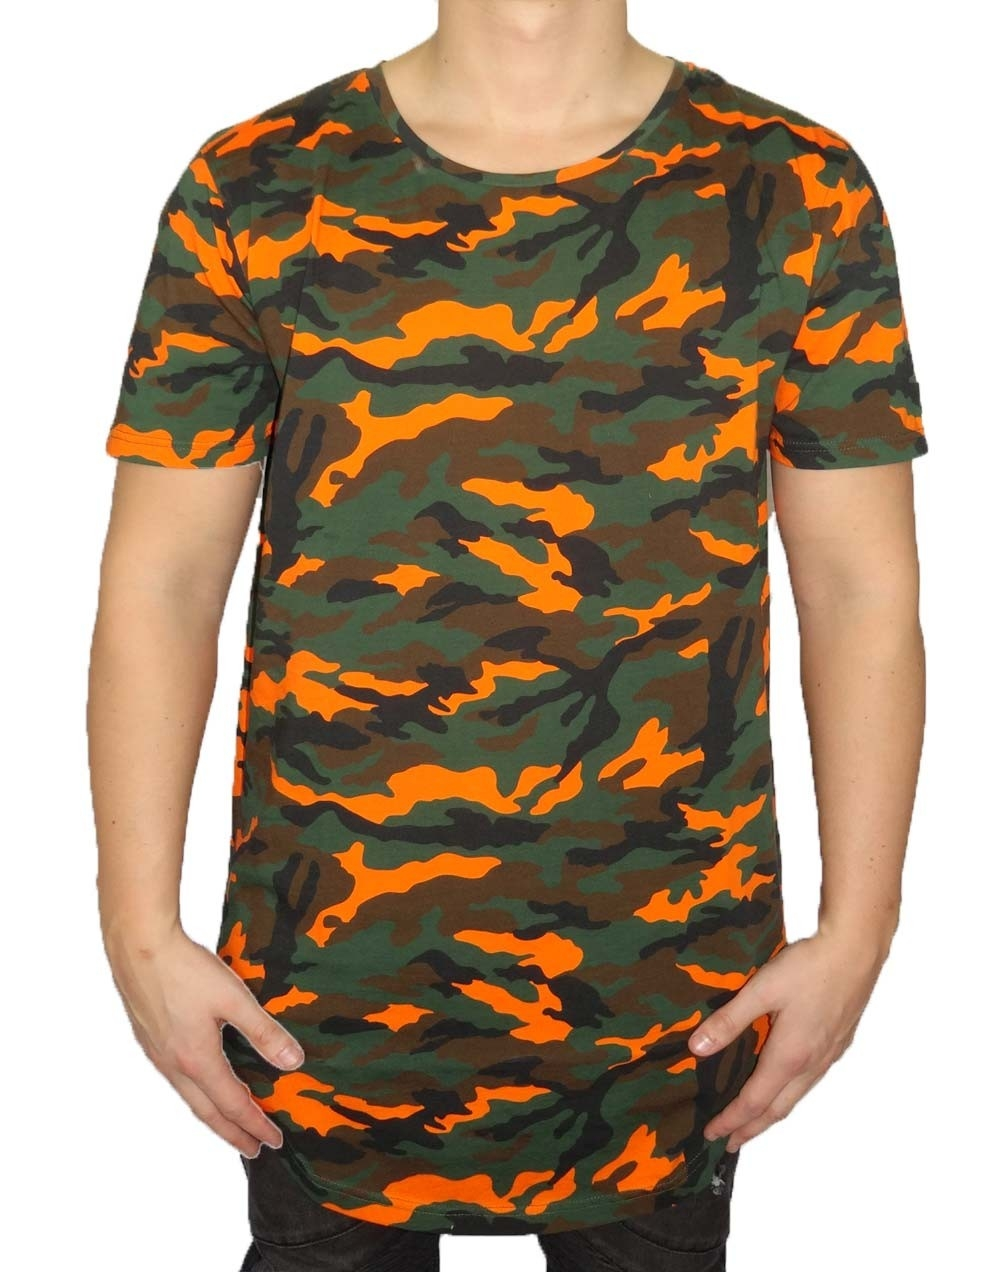 masko t shirt herren camouflage orange black kaviar. Black Bedroom Furniture Sets. Home Design Ideas